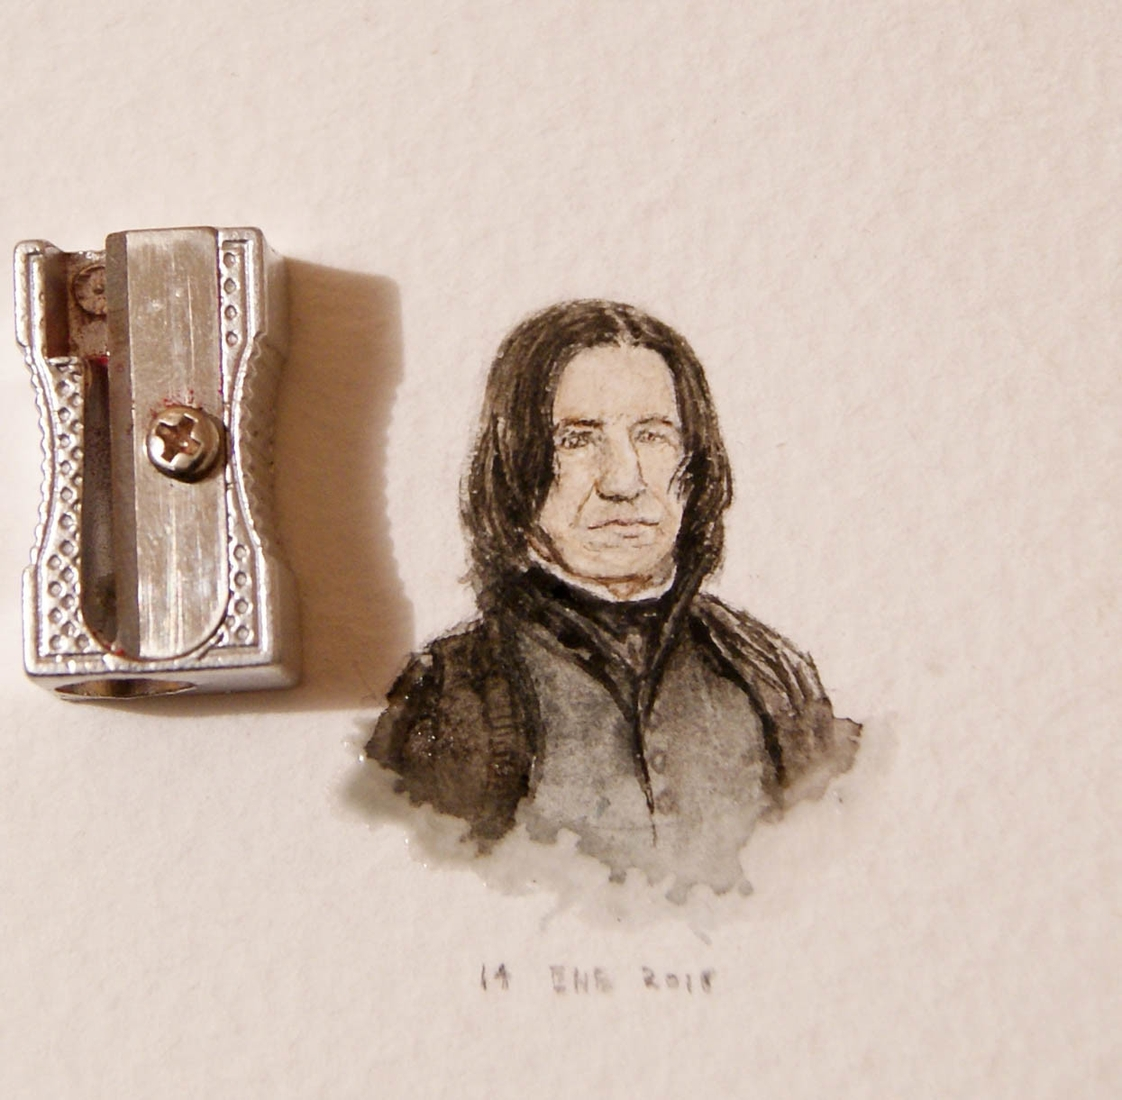 01-Alan-Rickman-Severus-Snape-Harry-Potter-Guillermo-Méndez-Mr-Luigi-Miniature-Drawings-and-Watercolor-Paintings-www-designstack-co